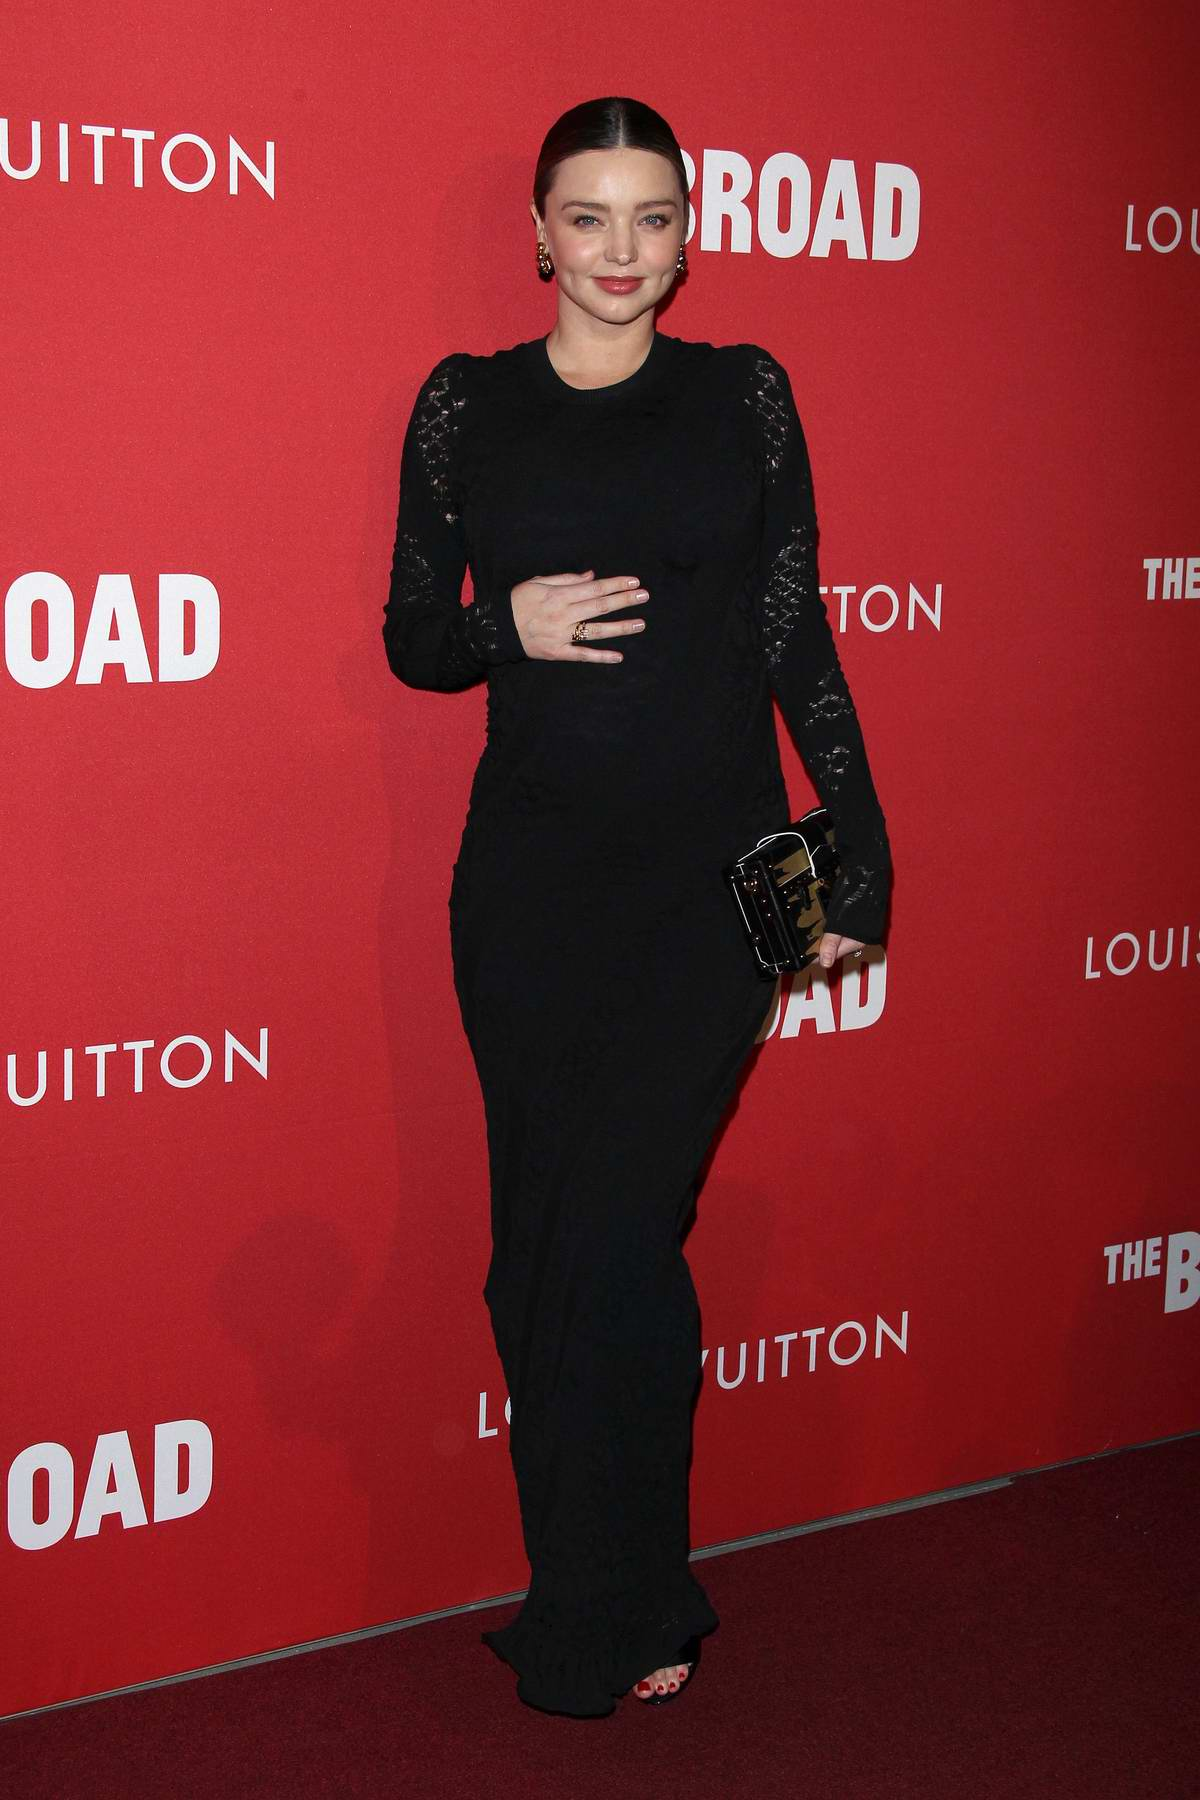 Miranda Kerr attends the Broad and Louis Vuitton Celebrate Jasper Johns 'Something Resembling Truth' in Los Angeles